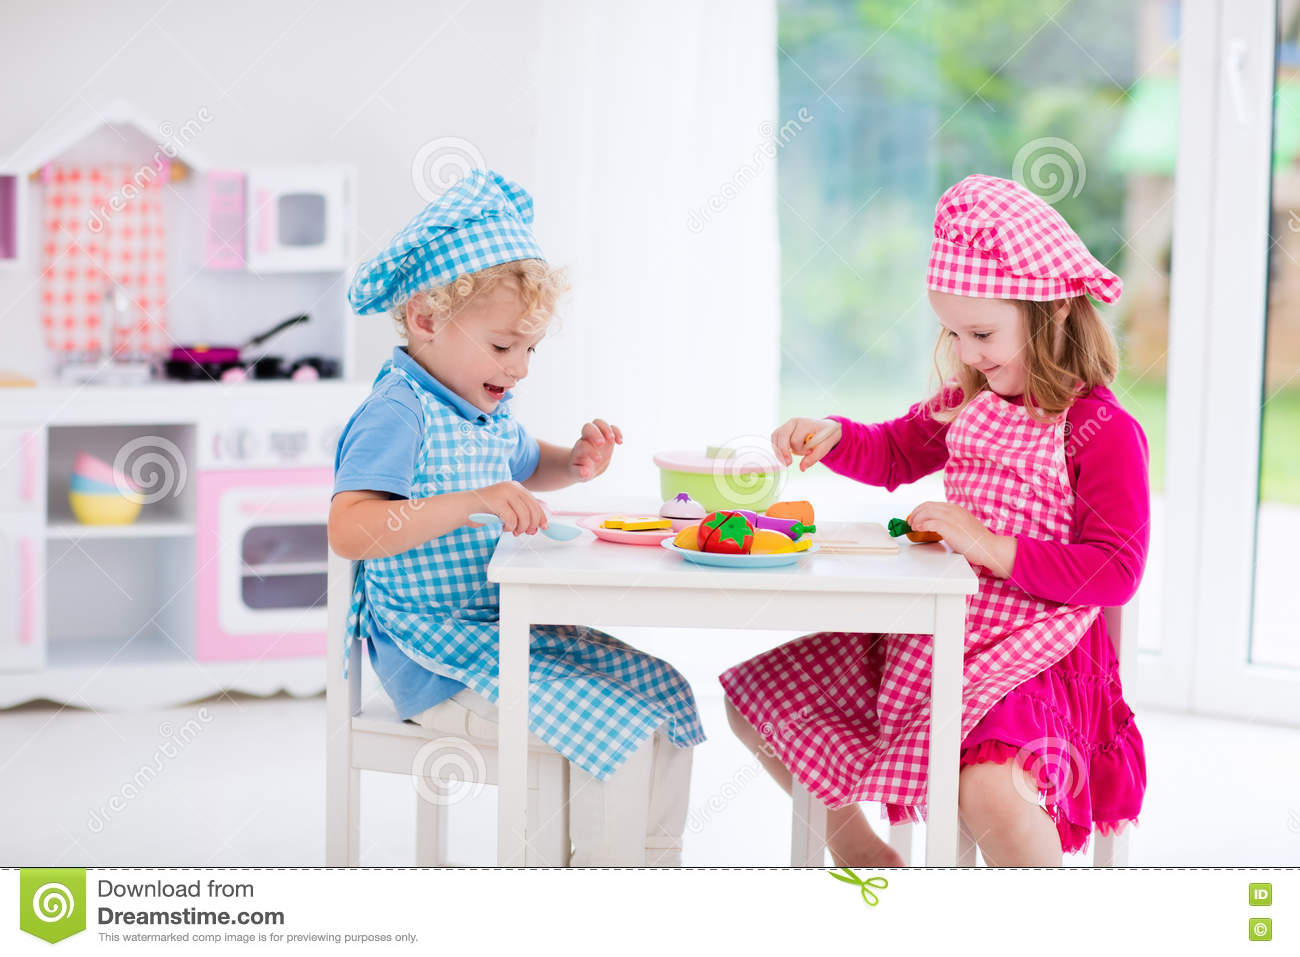 Little Girl Toys : Kids playing with toy kitchen royalty free stock photo